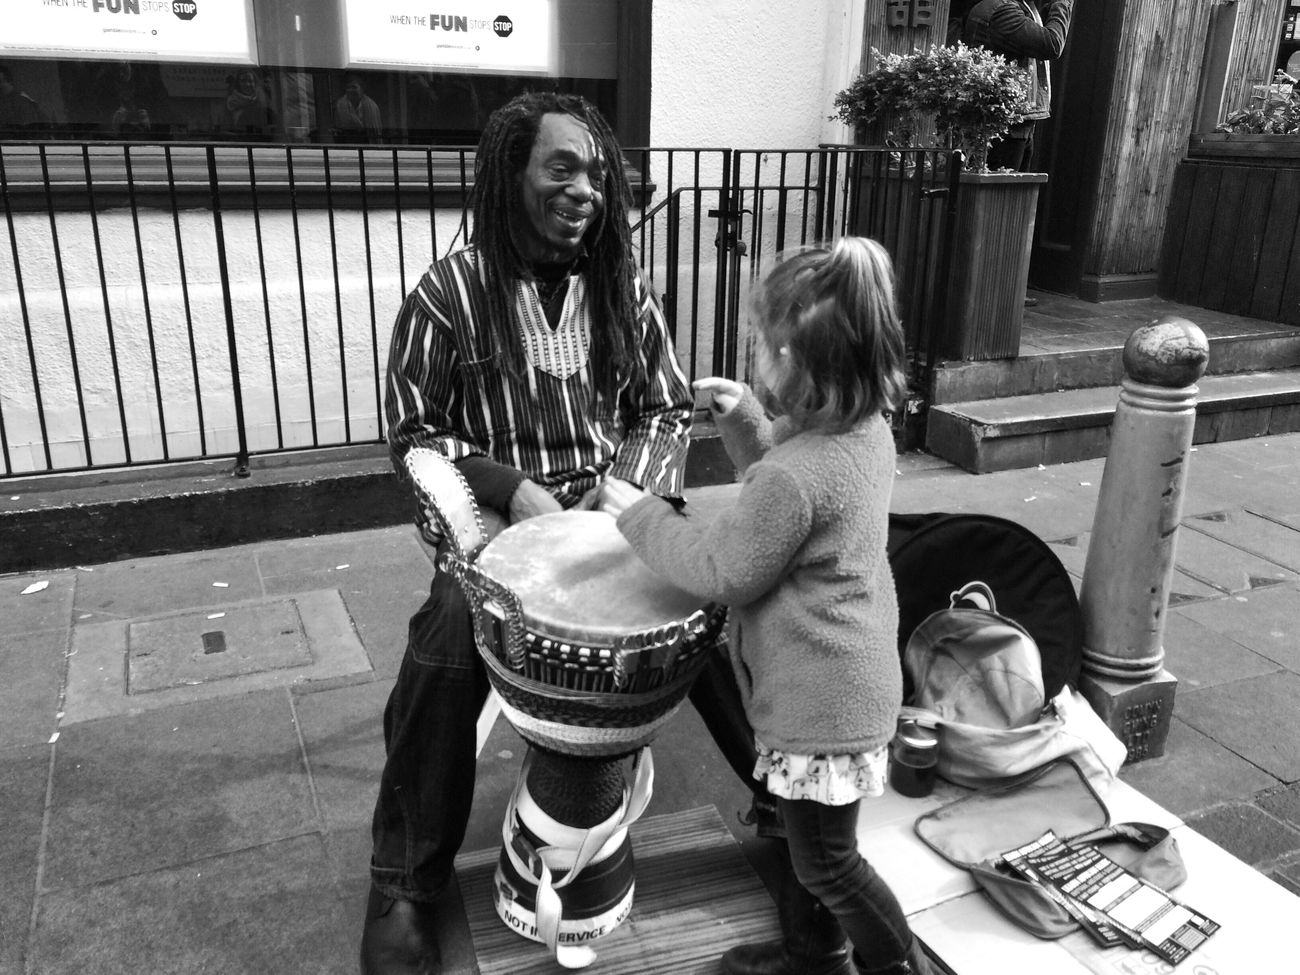 Bang the drum EyeEm Best Shots - The Streets Streetphoto_bw Blackandwhite Photography NEM GoodKarma